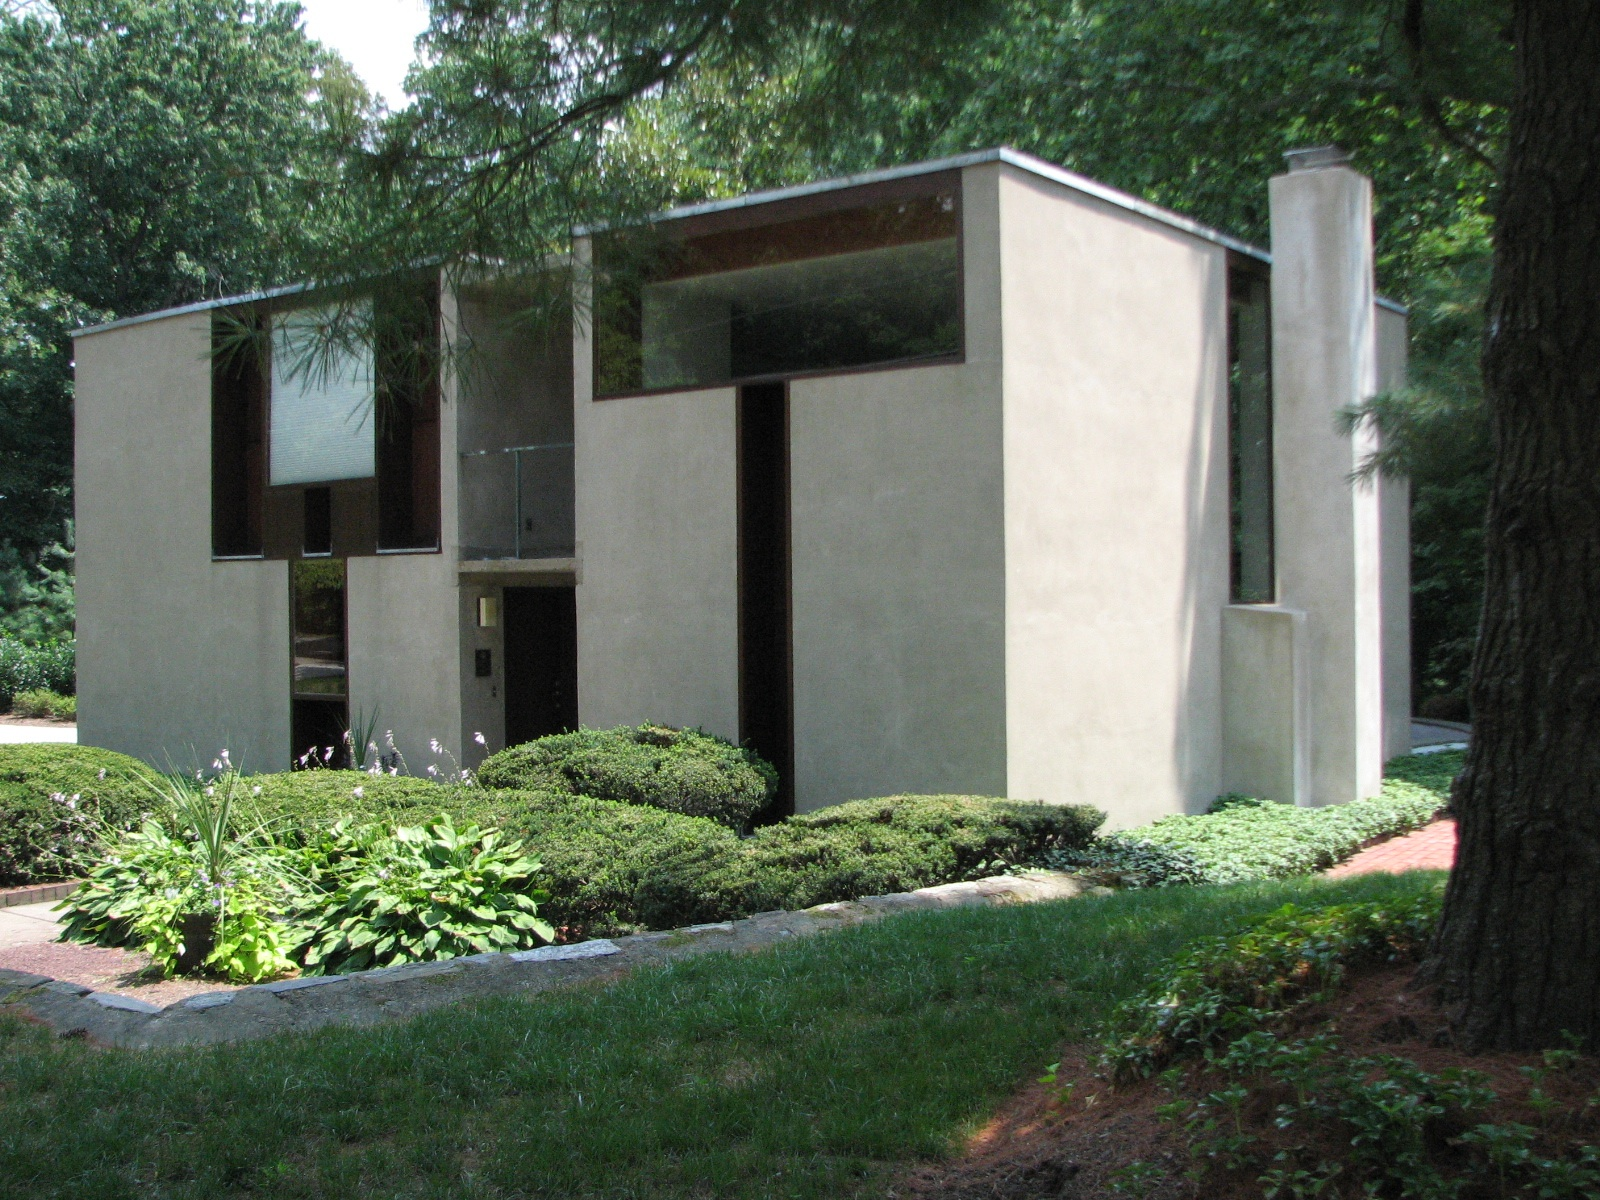 The front of the Margaret Esherick House allows light through two T-shaped windows.